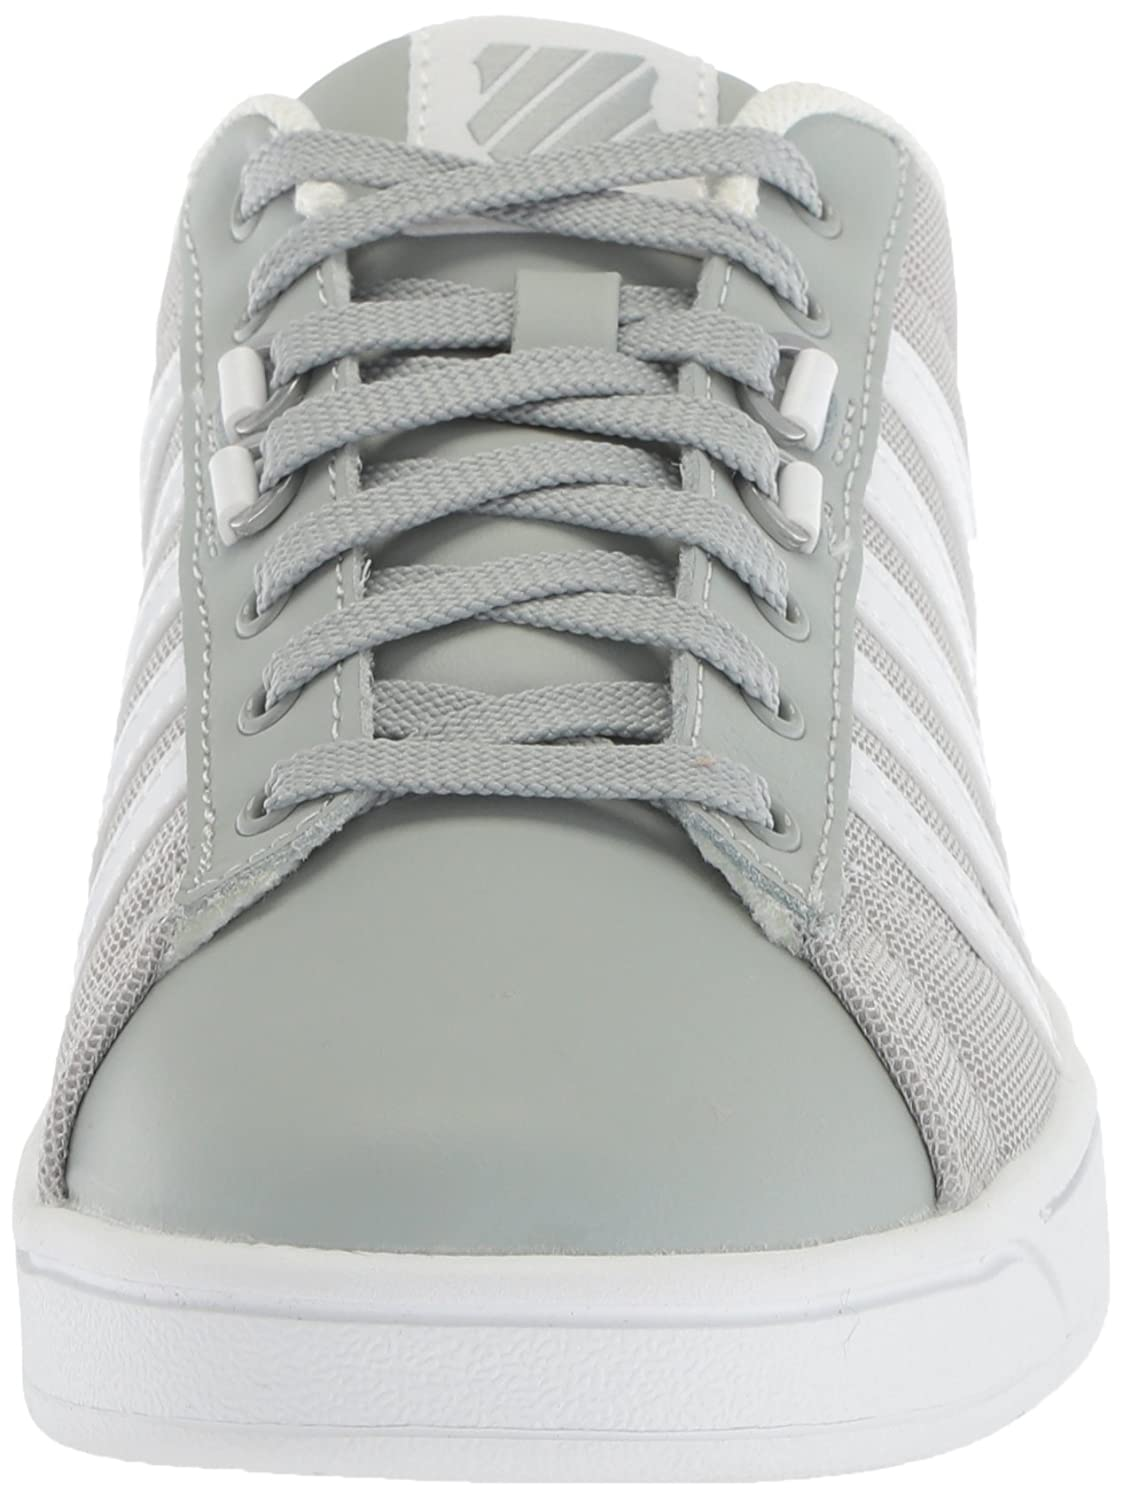 K-Swiss B073WQD1NF Women's Hoke T CMF Fashion Sneaker B073WQD1NF K-Swiss 6 B(M) US|Mirage Gray/White 6d9c62